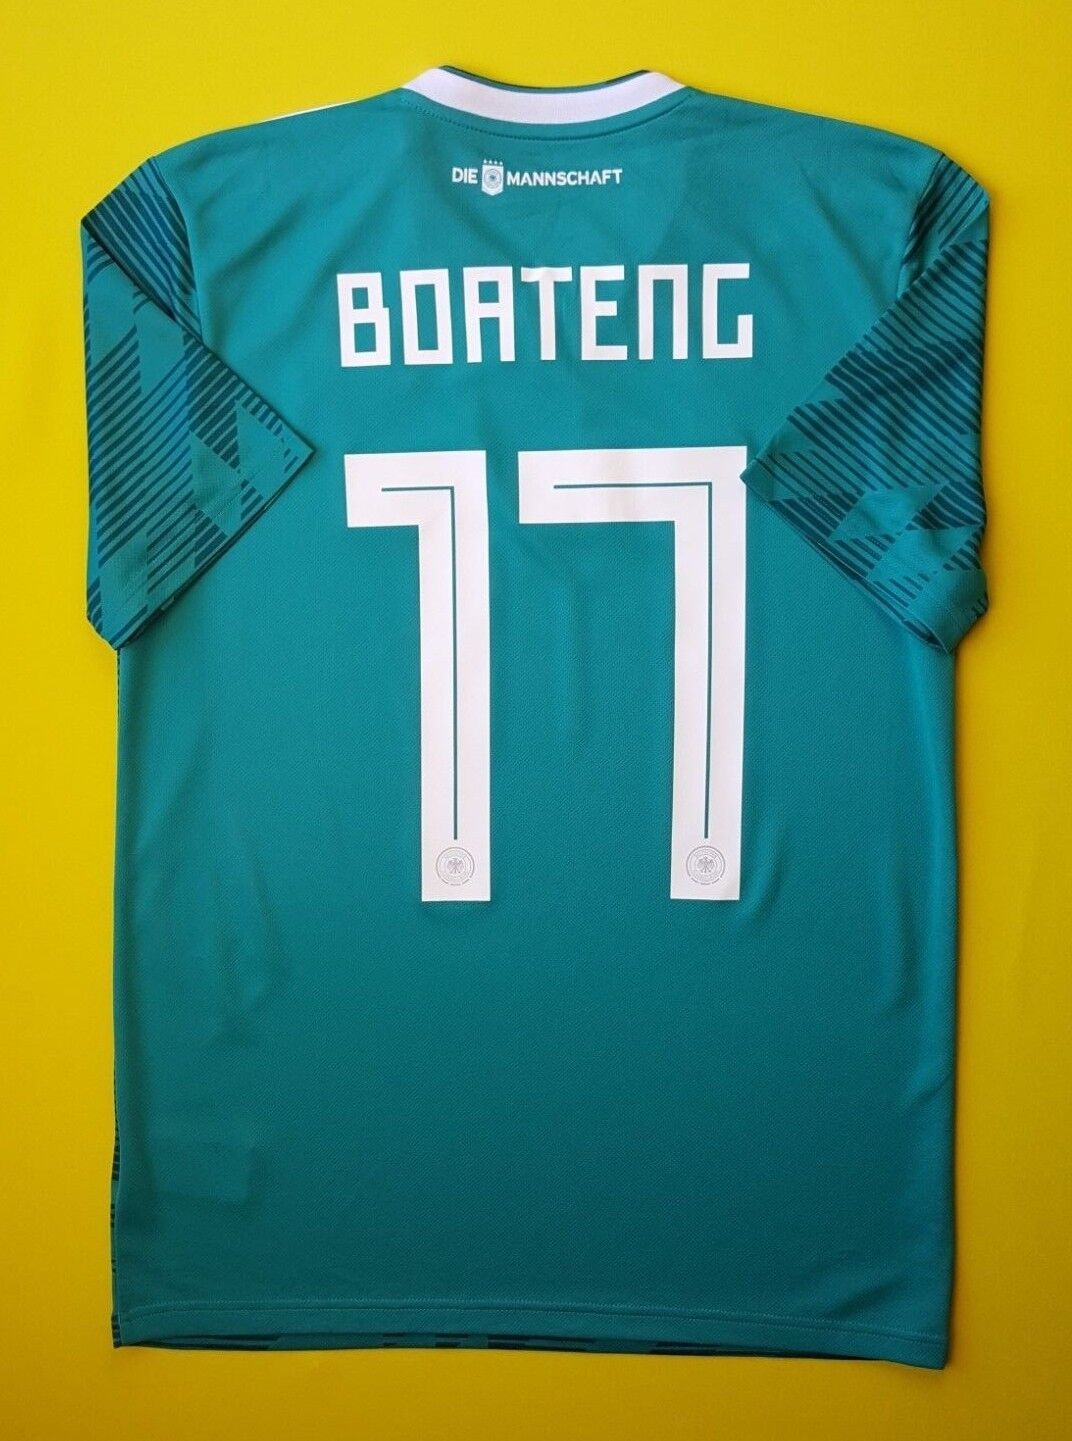 c6496c3e771 5+ 5 Boateng Germany soccer jersey 2018 away shirt BR3144 football Adidas